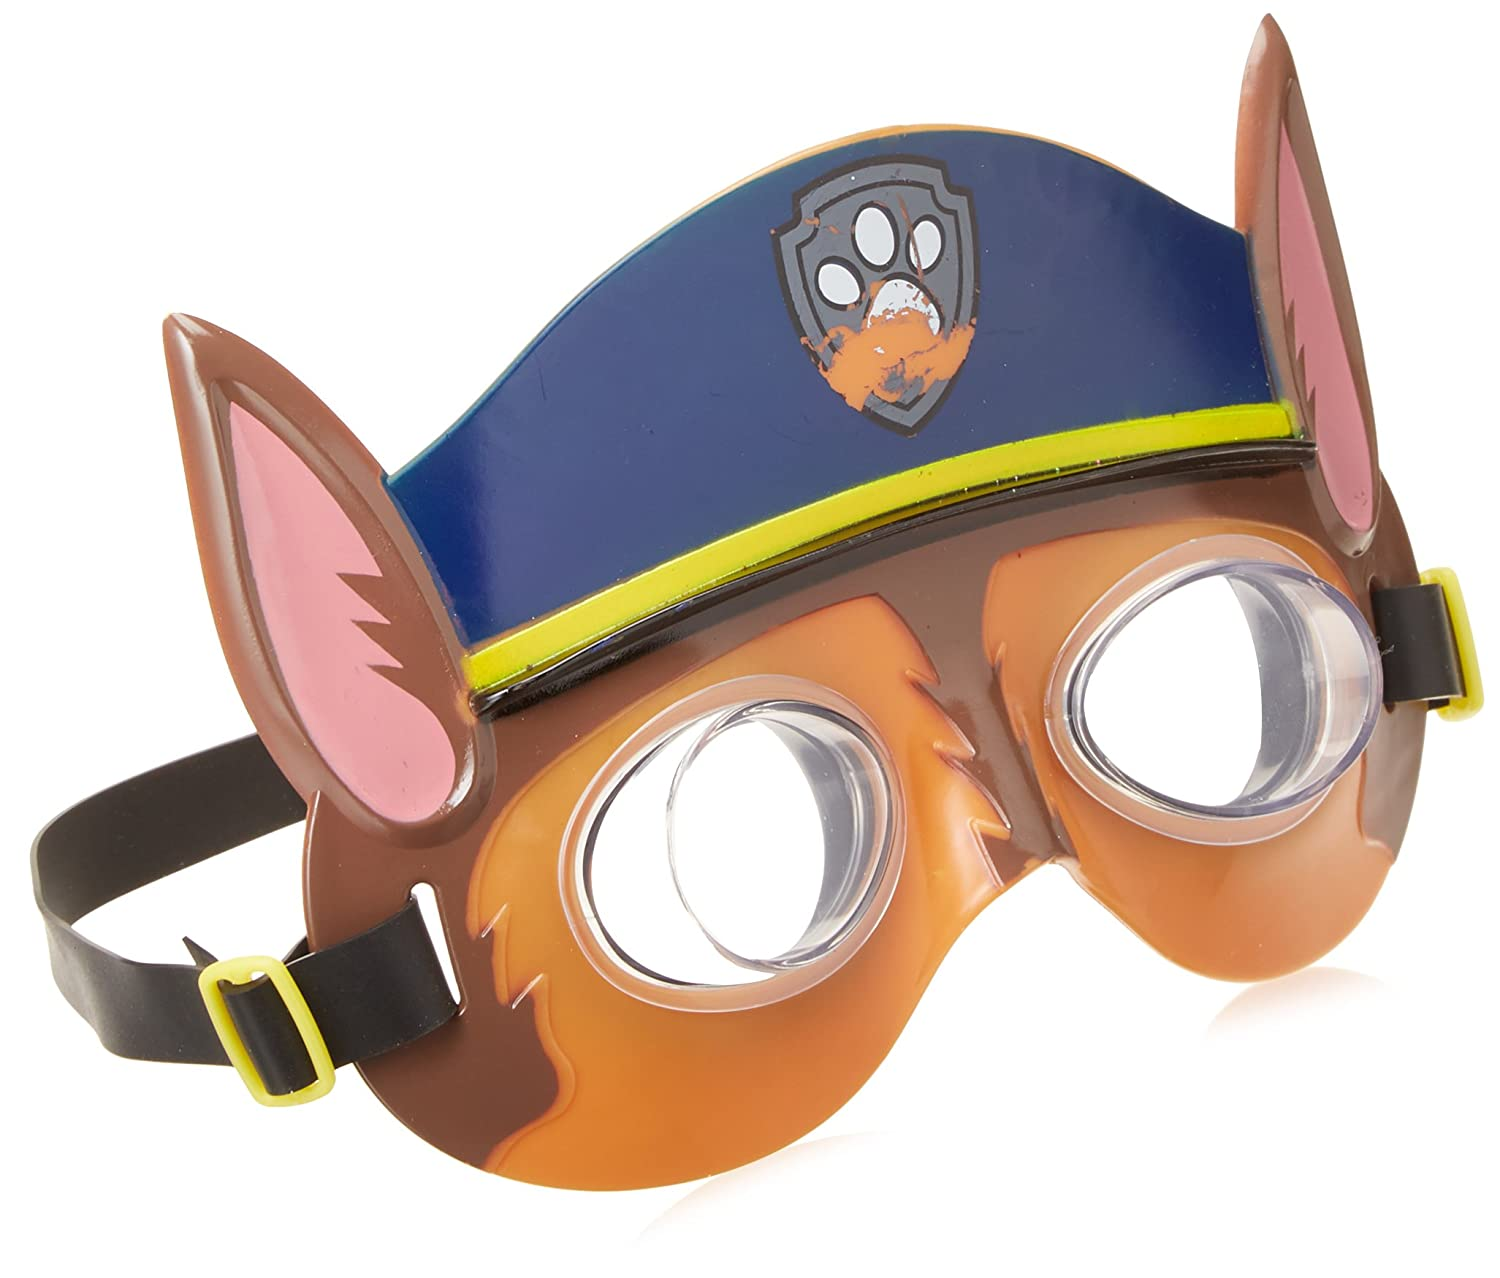 dadde5211f Spin master paw patrol swim goggles toys games jpg 1500x1278 Paw patrol  snarkle and goggles